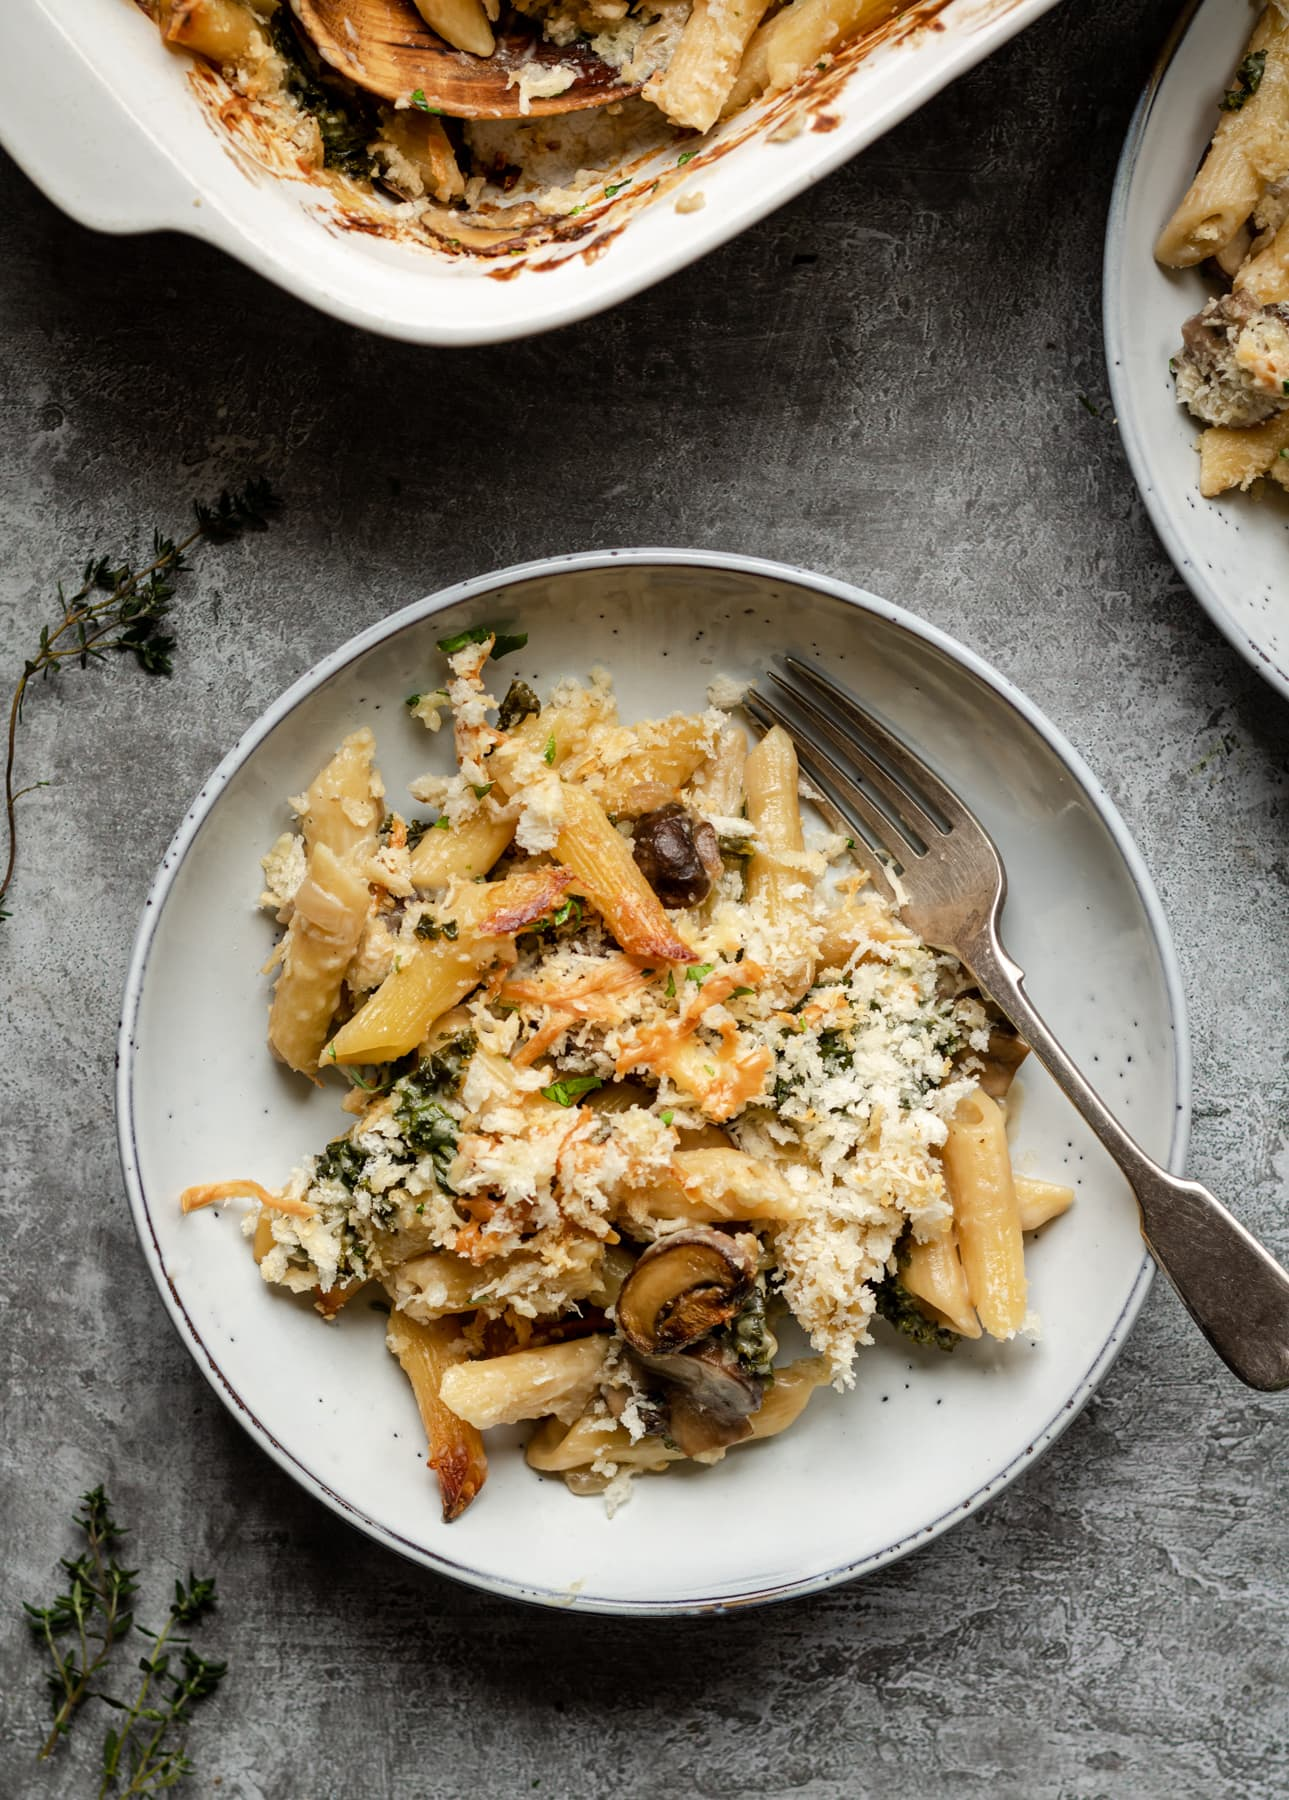 Pasta in a creamy sauce, with mushrooms and kale covered in breadcrumbs